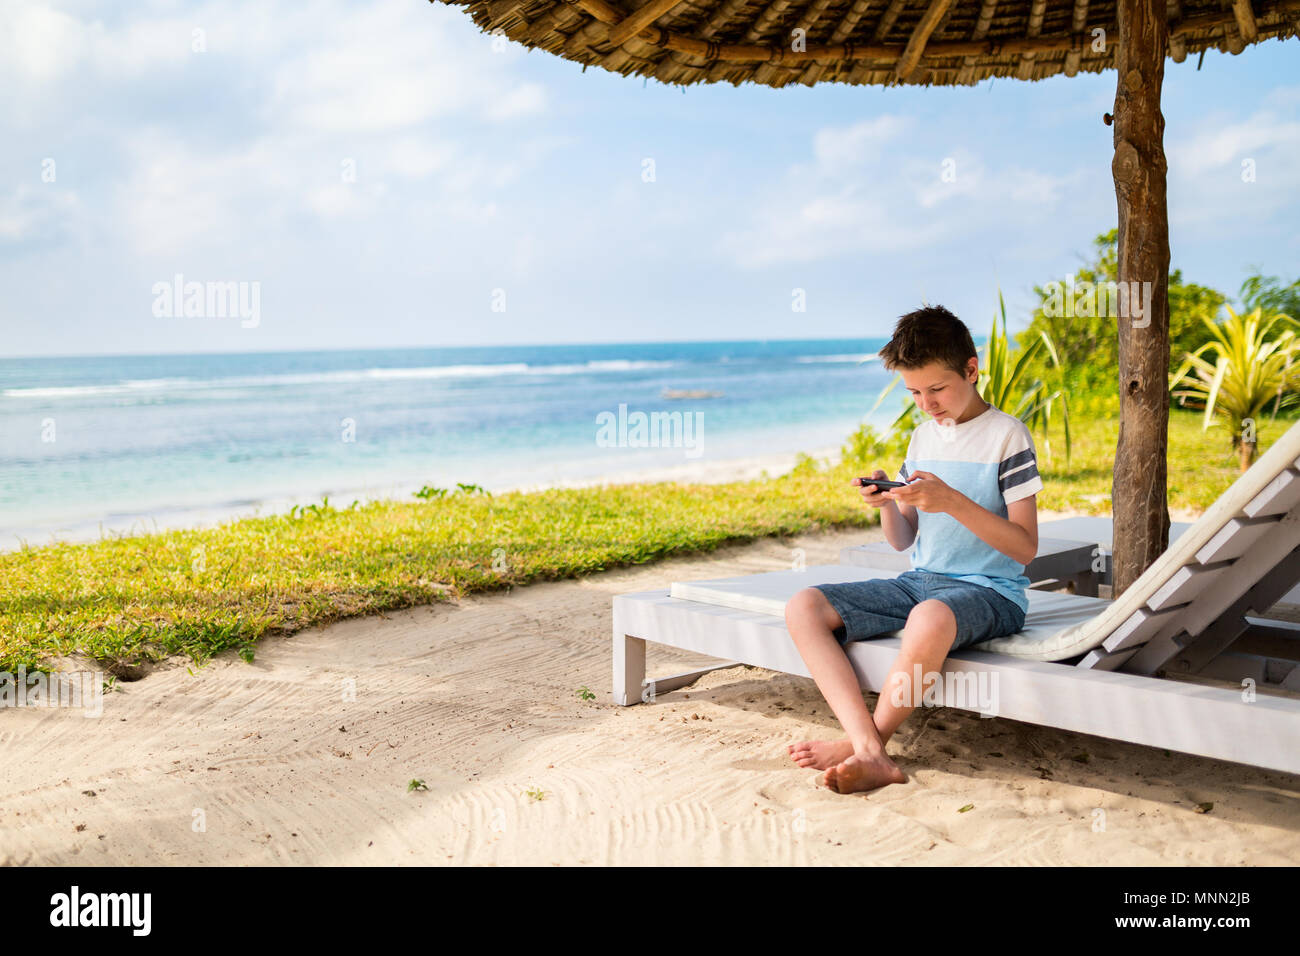 Handsome pre-teen age boy playing on phone at tropical beach on summer vacation - Stock Image